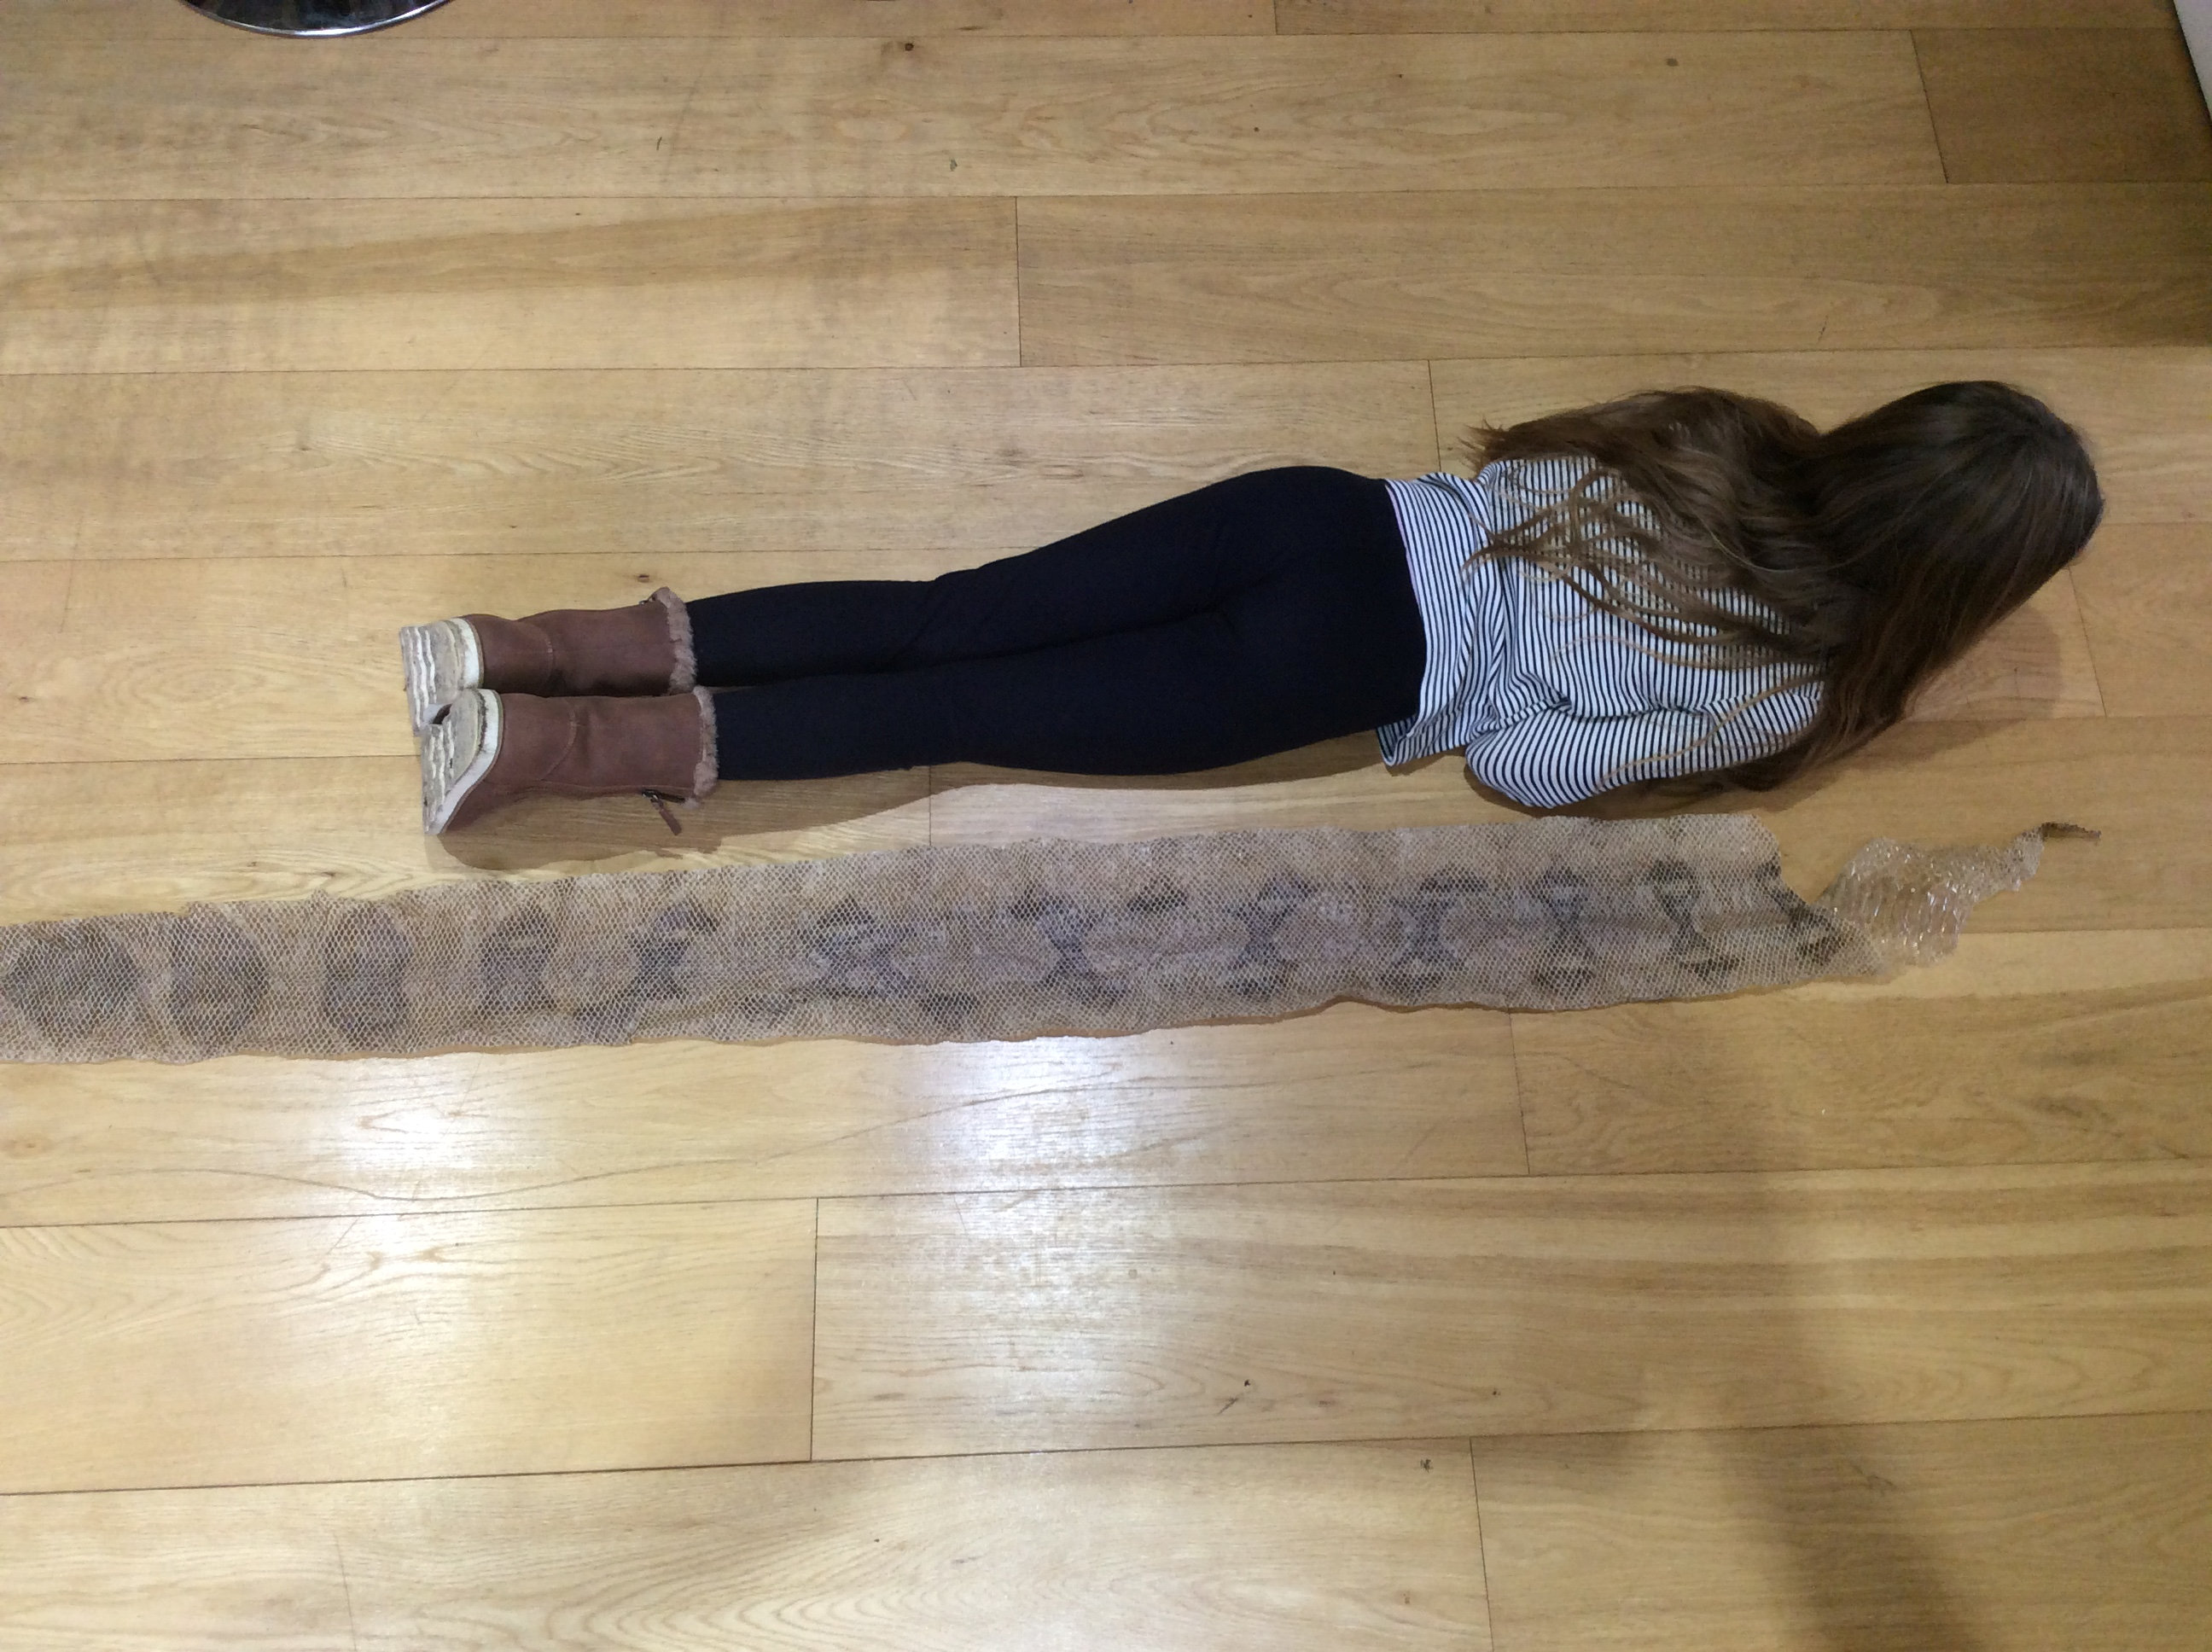 Amelia lying next to the gigantic snake skin. (SWNS)